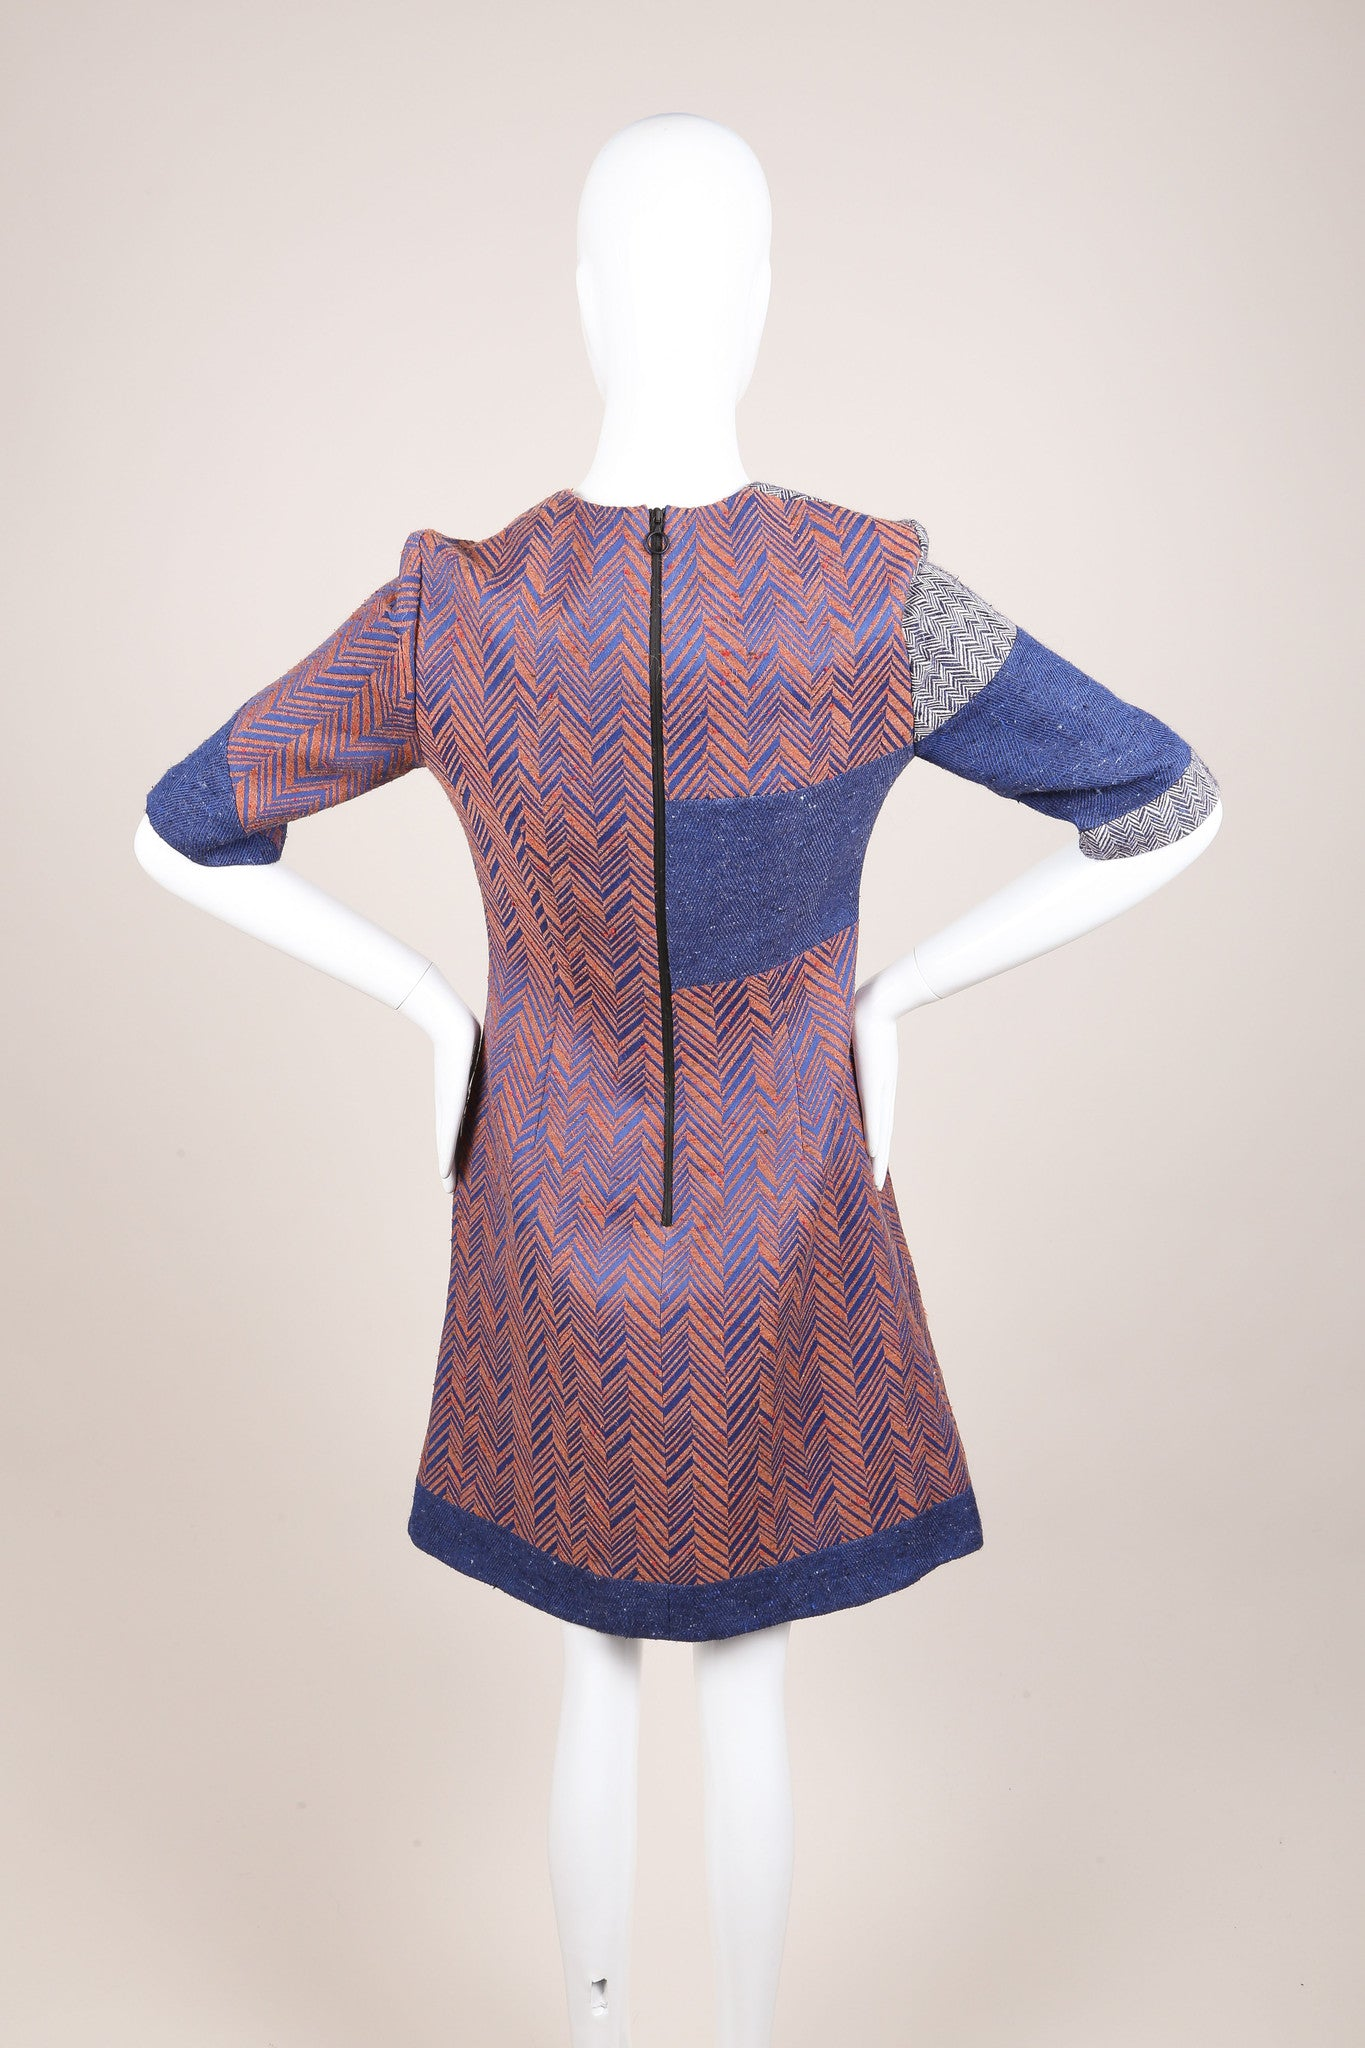 Roksanda New With Tags Blue, White, and Copper Herringbone Sheath Dress Backview